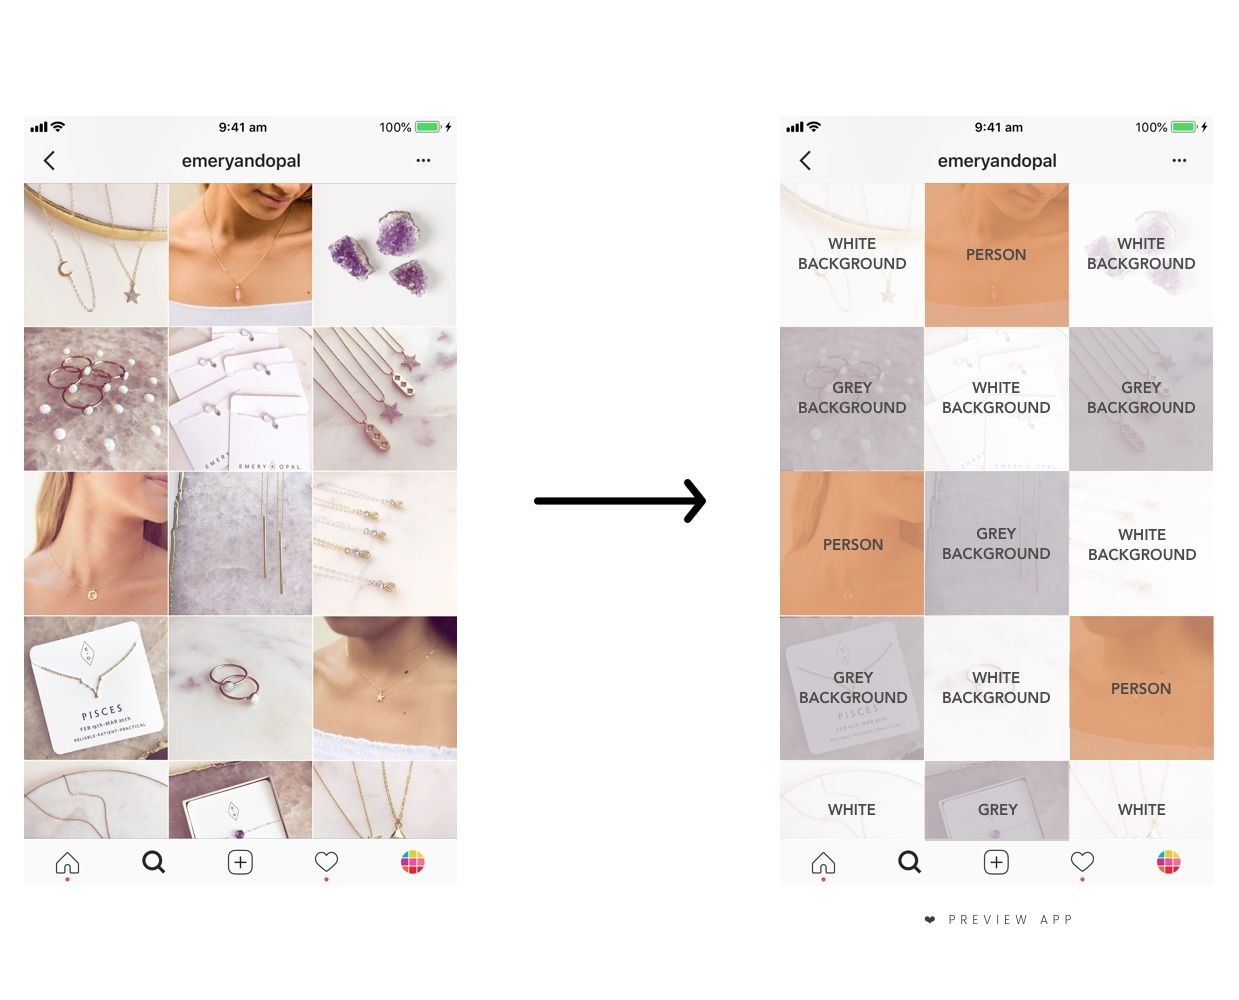 11 Simple Tips that Will Instantly Improve your Instagram